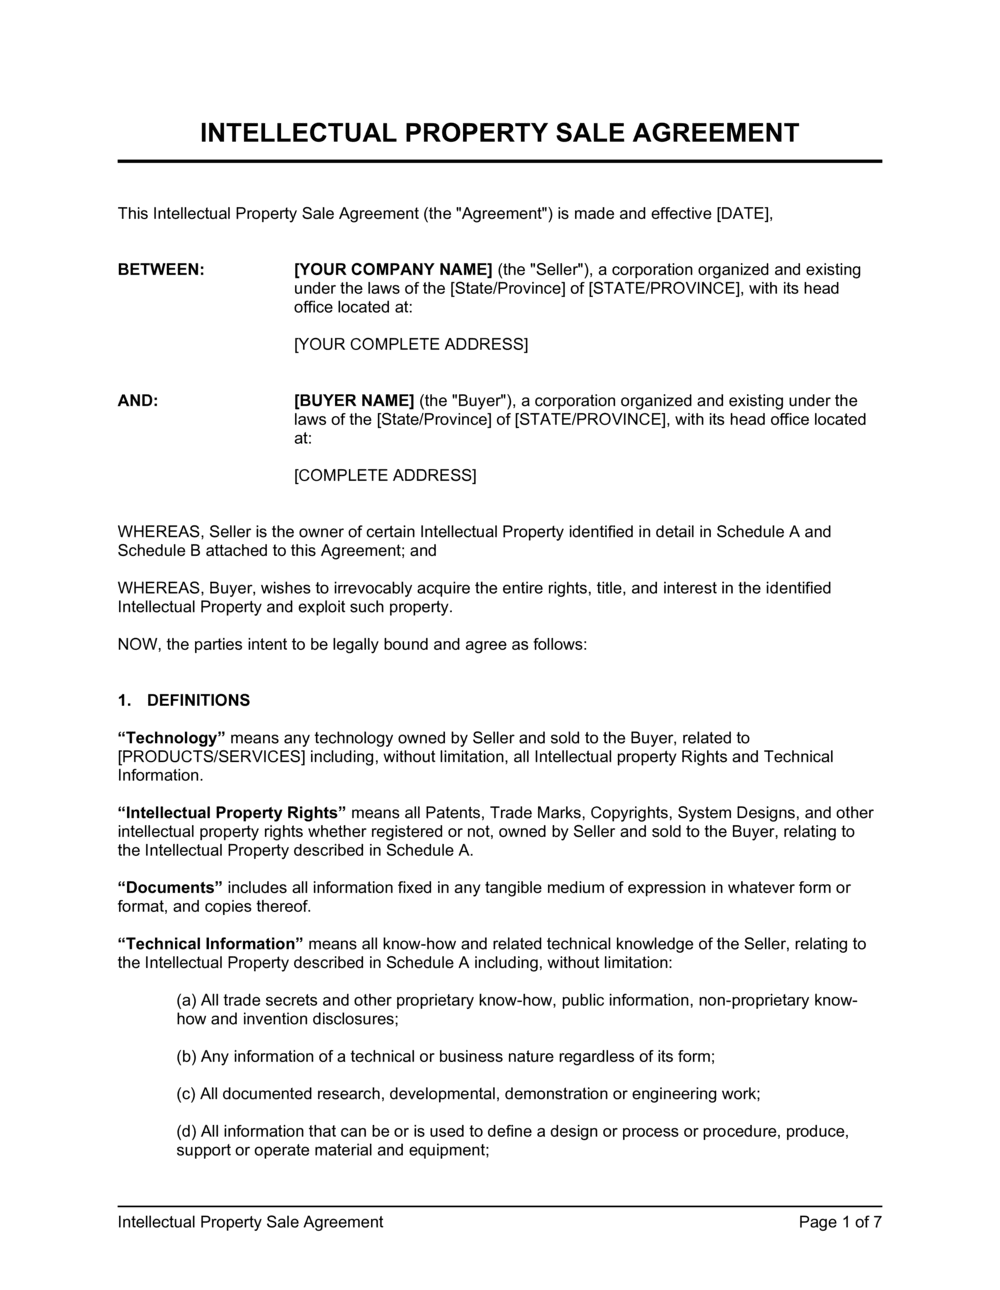 Business-in-a-Box's IP Sale Agreement Template